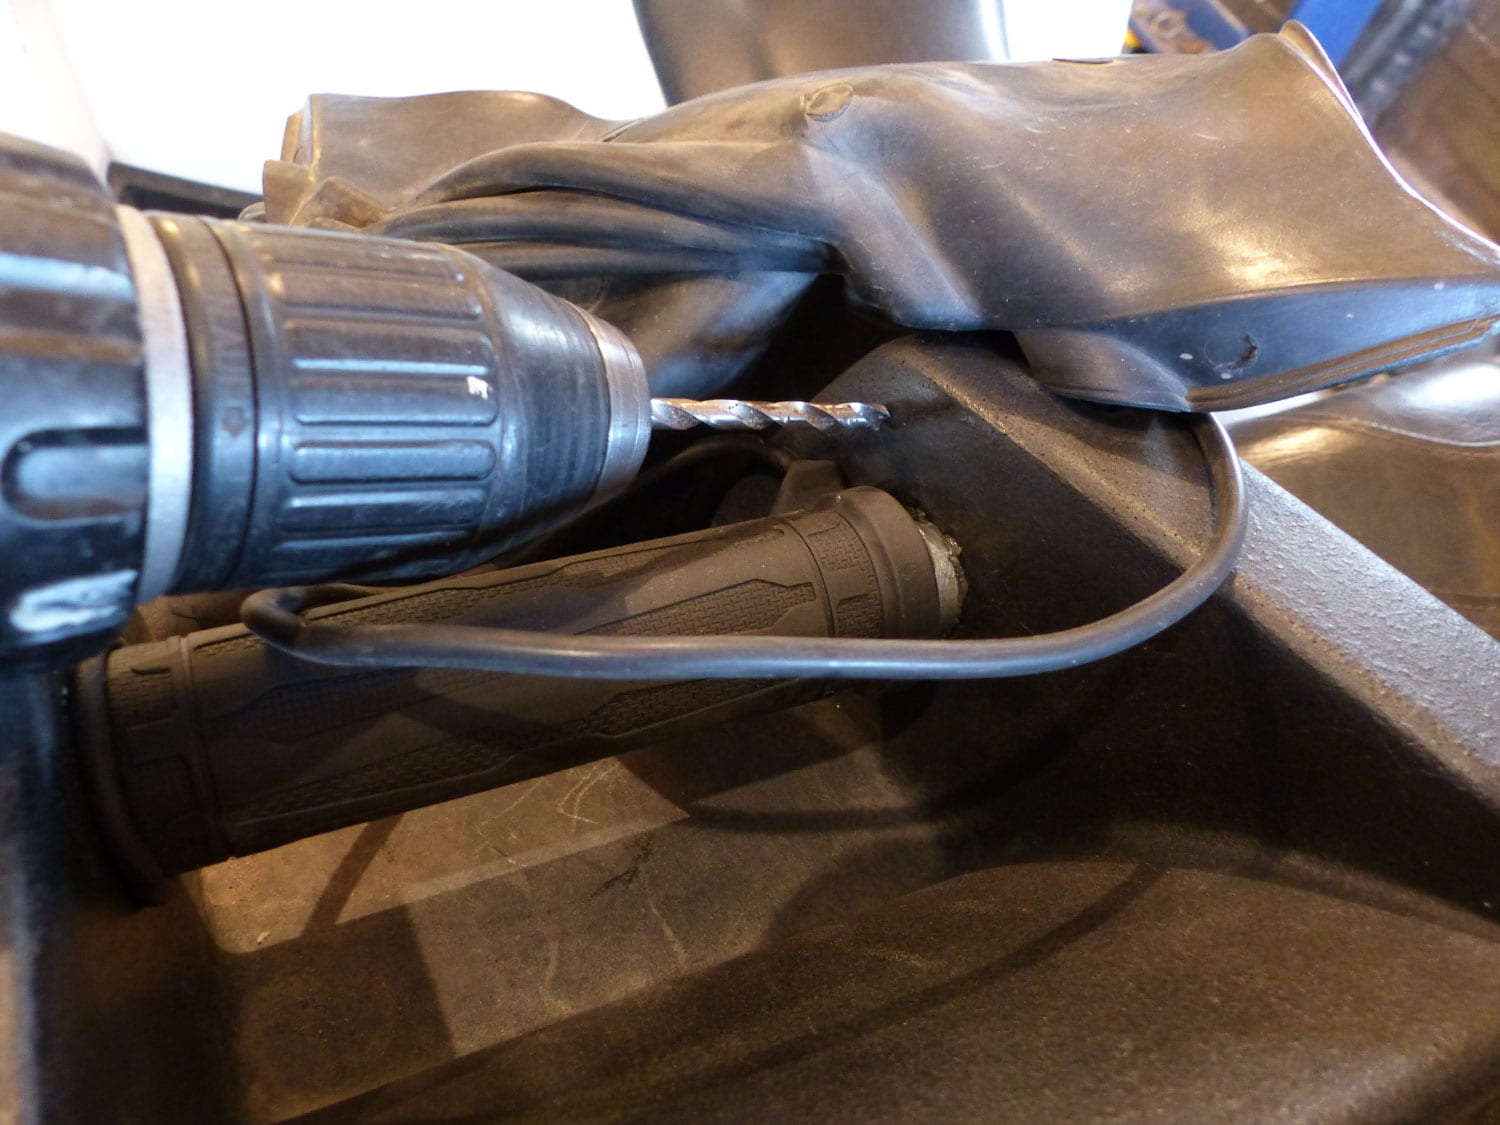 Installing Heated Grips on a Passenger Seat